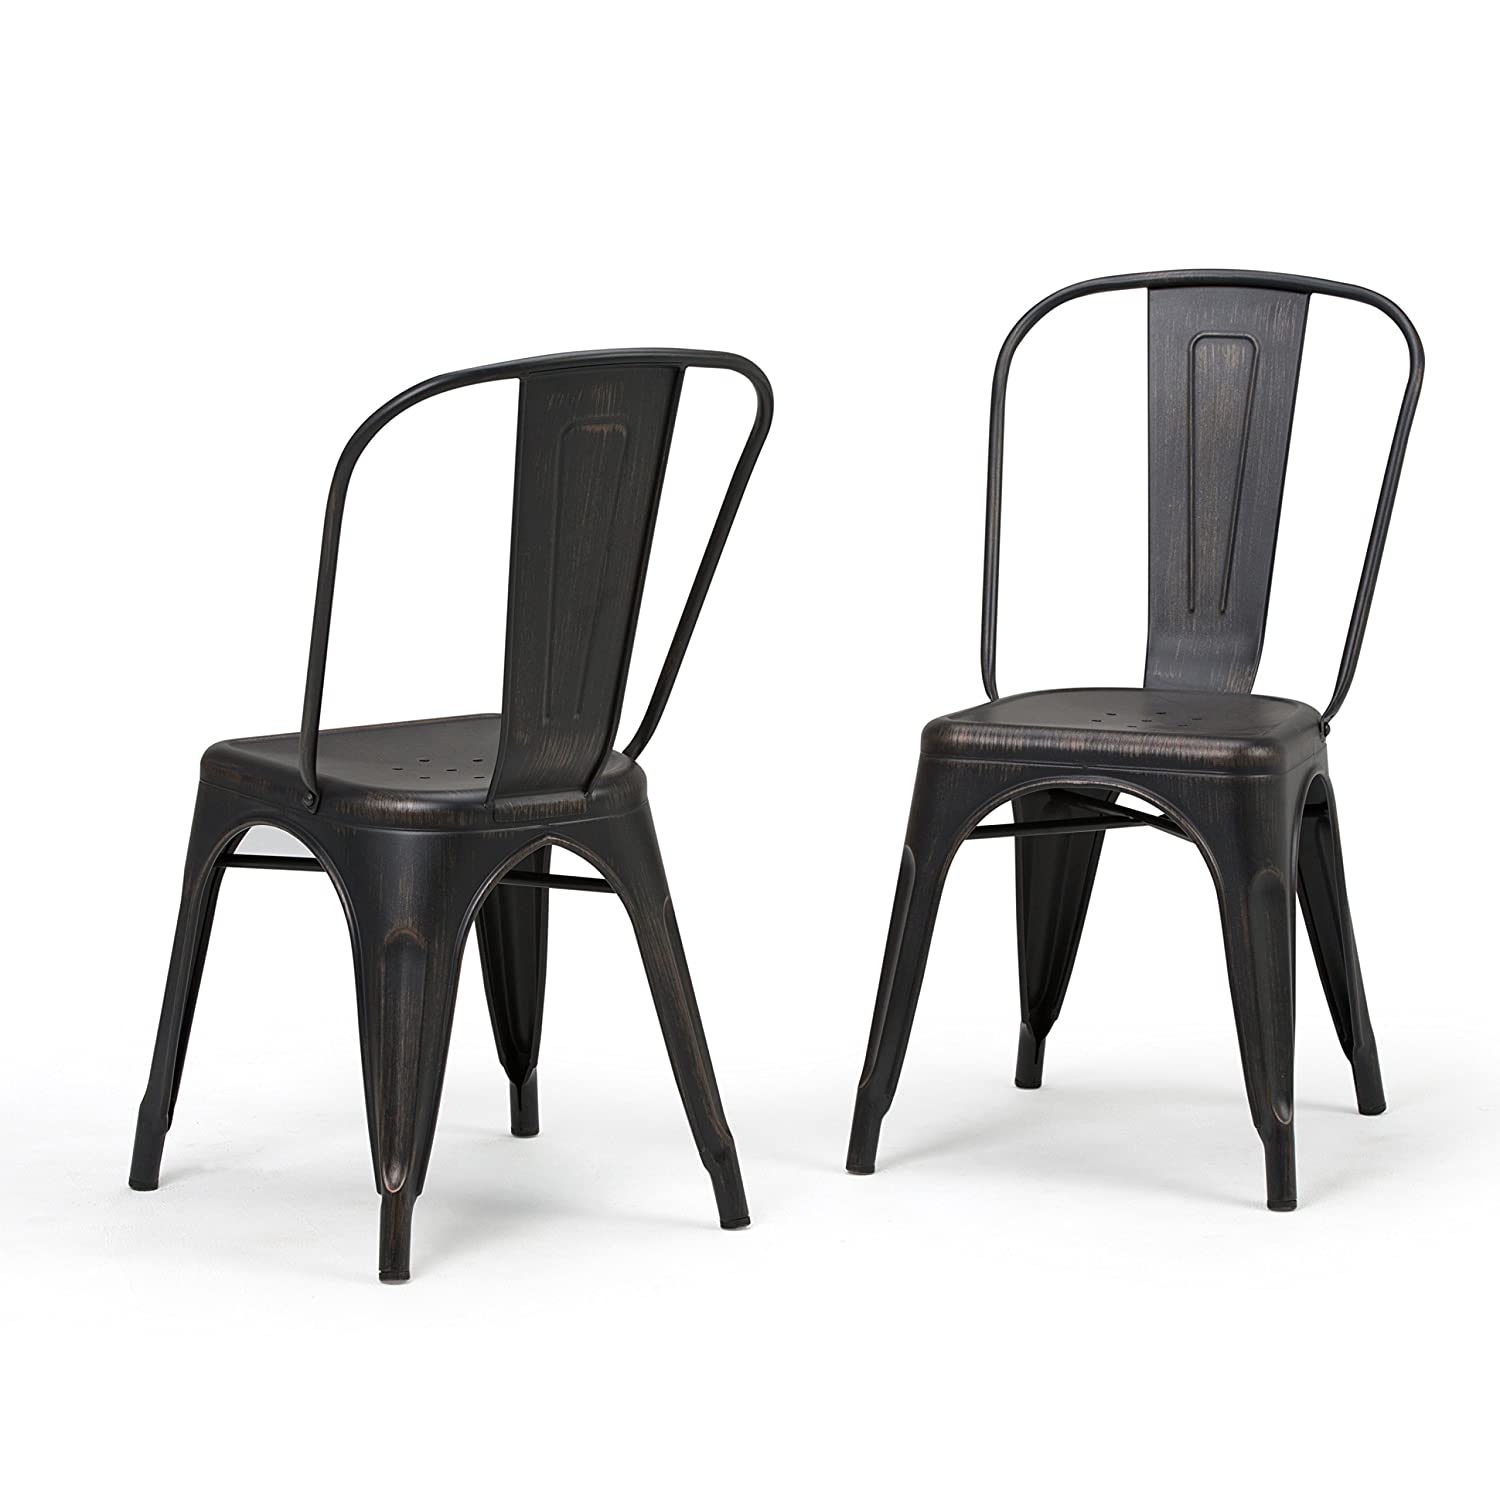 Simpli Home AXCFLE-01-DBL Fletcher Industrial Metal Dining Side Chair Set of 2 in Distressed Black, Copper , Fully Assembled